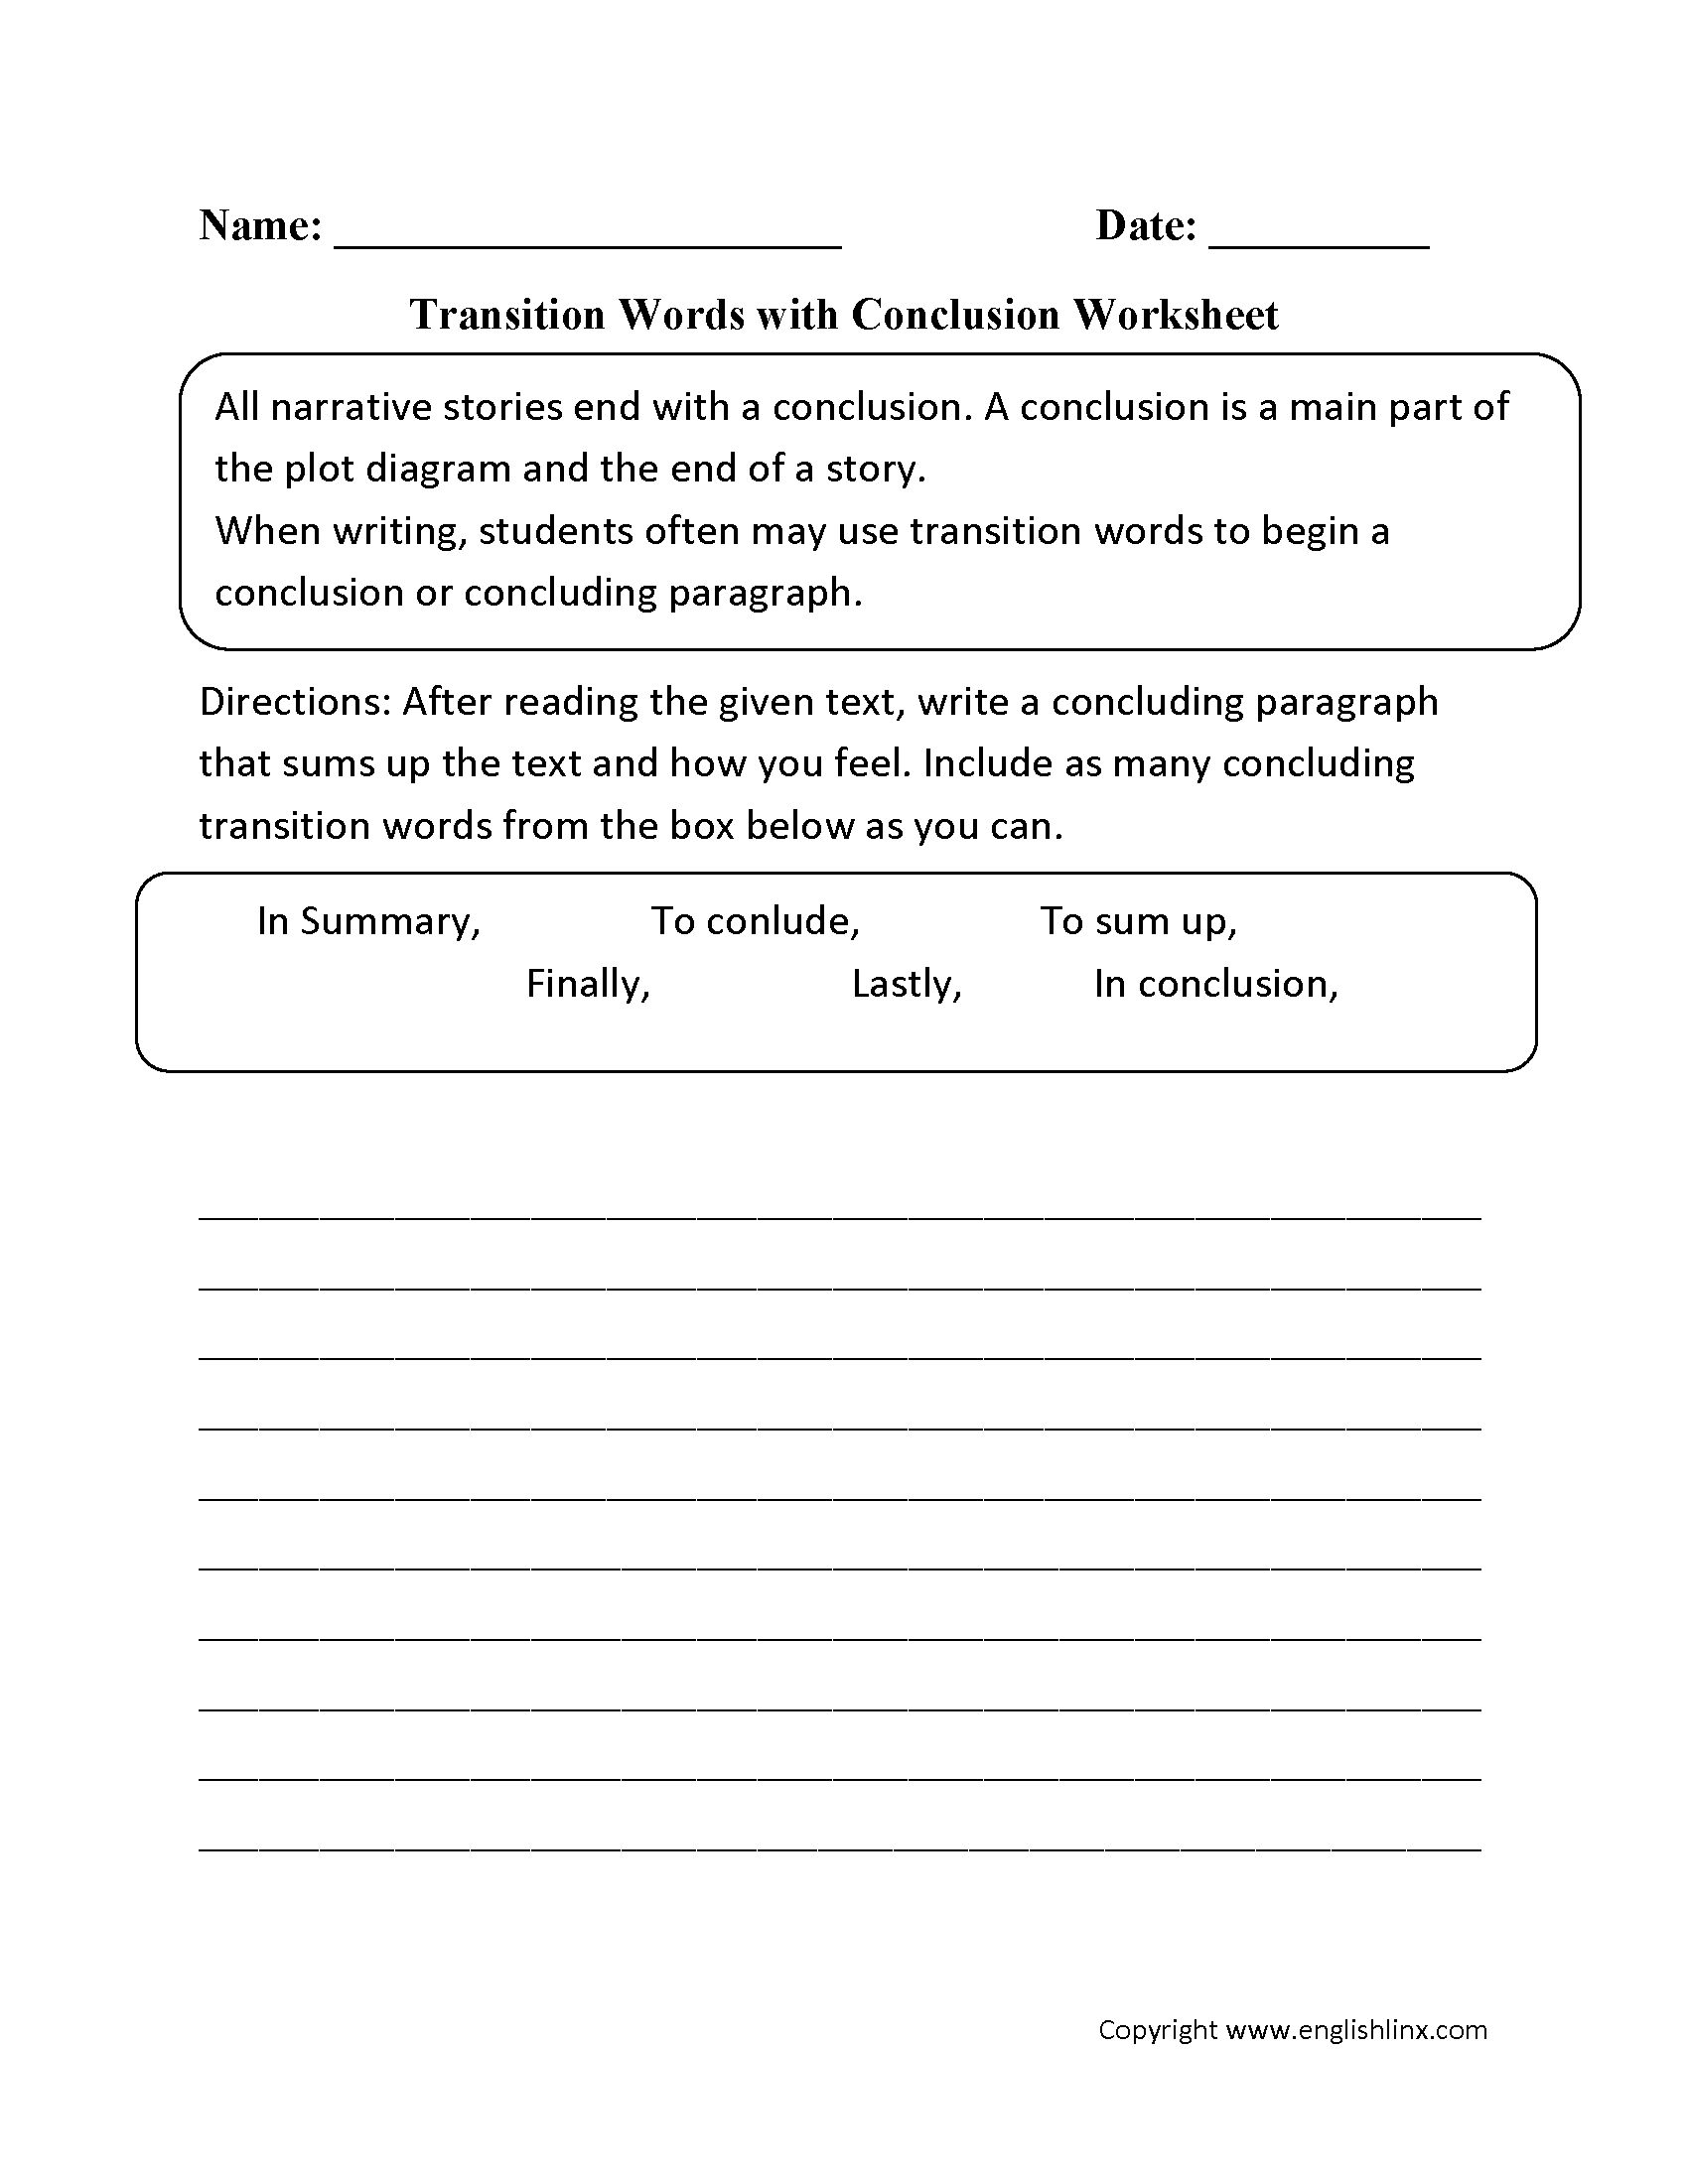 Worksheets Drawing Conclusions Worksheet reading worksheets drawing conclusions worksheets